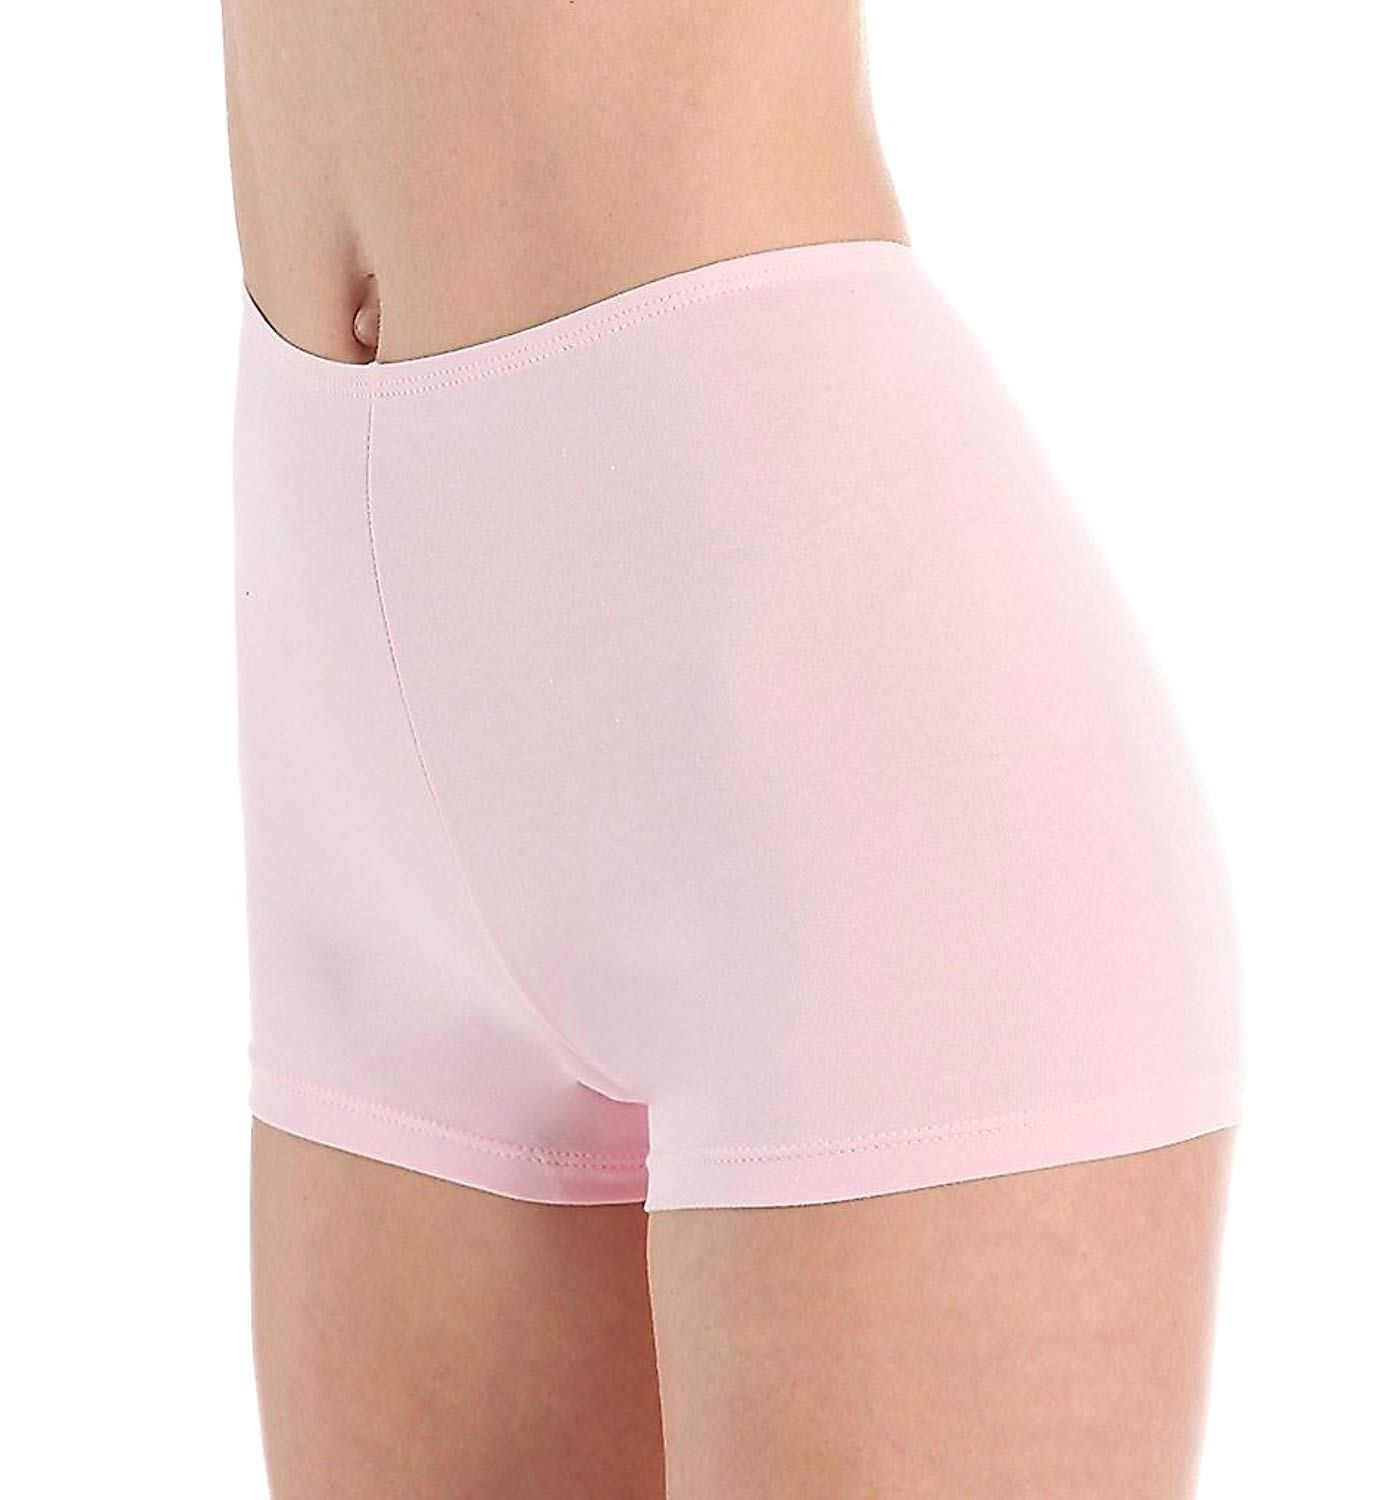 Elita 4070 The Essentials Boy Leg Brief Panty